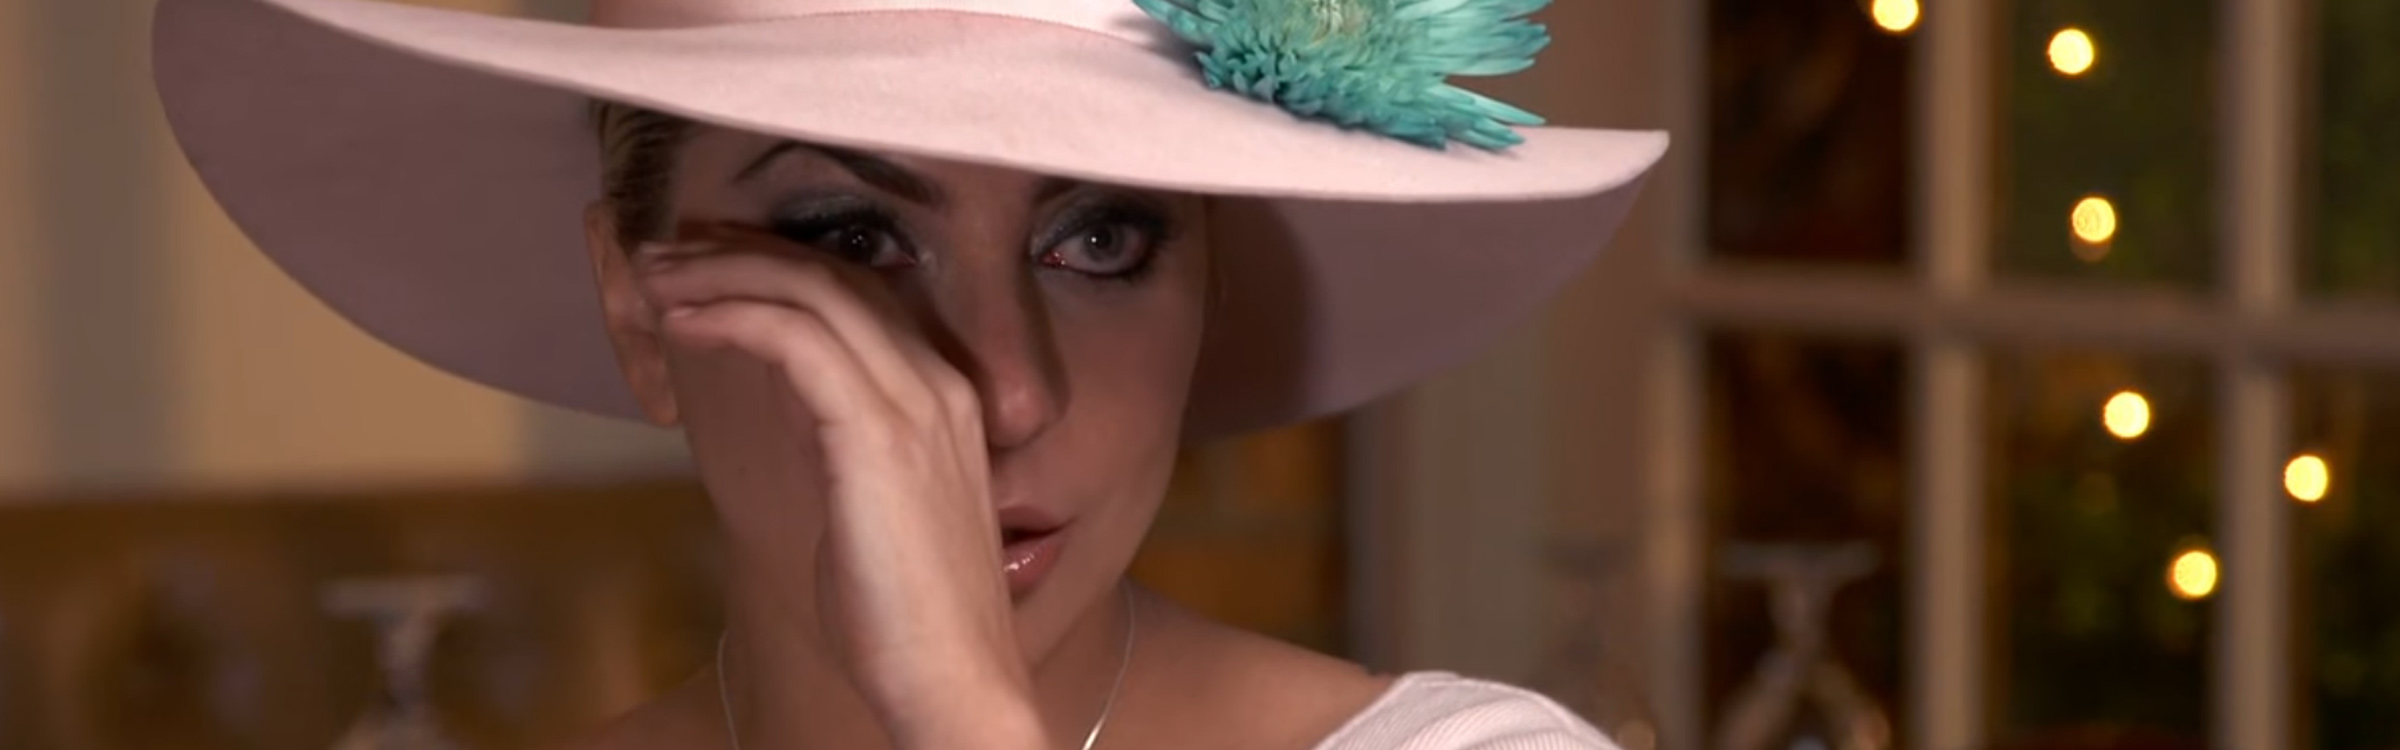 Lady gaga emotional header